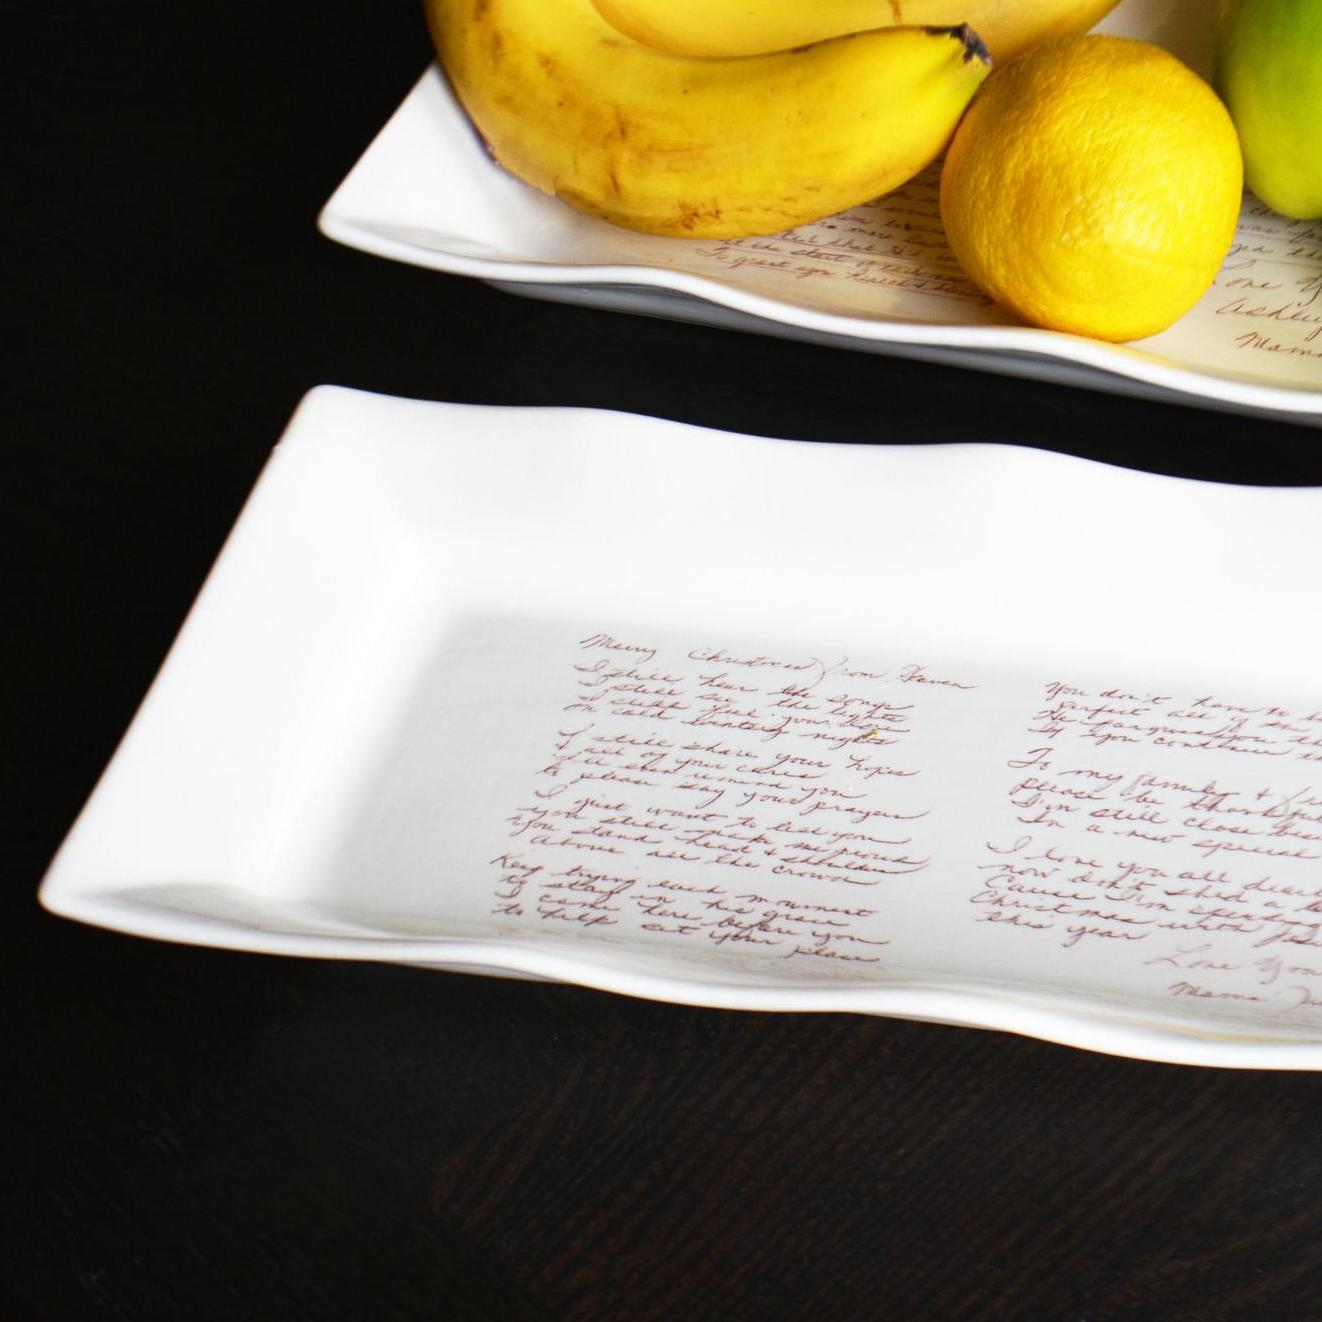 ceramic appetizer platters with handwritten recipes